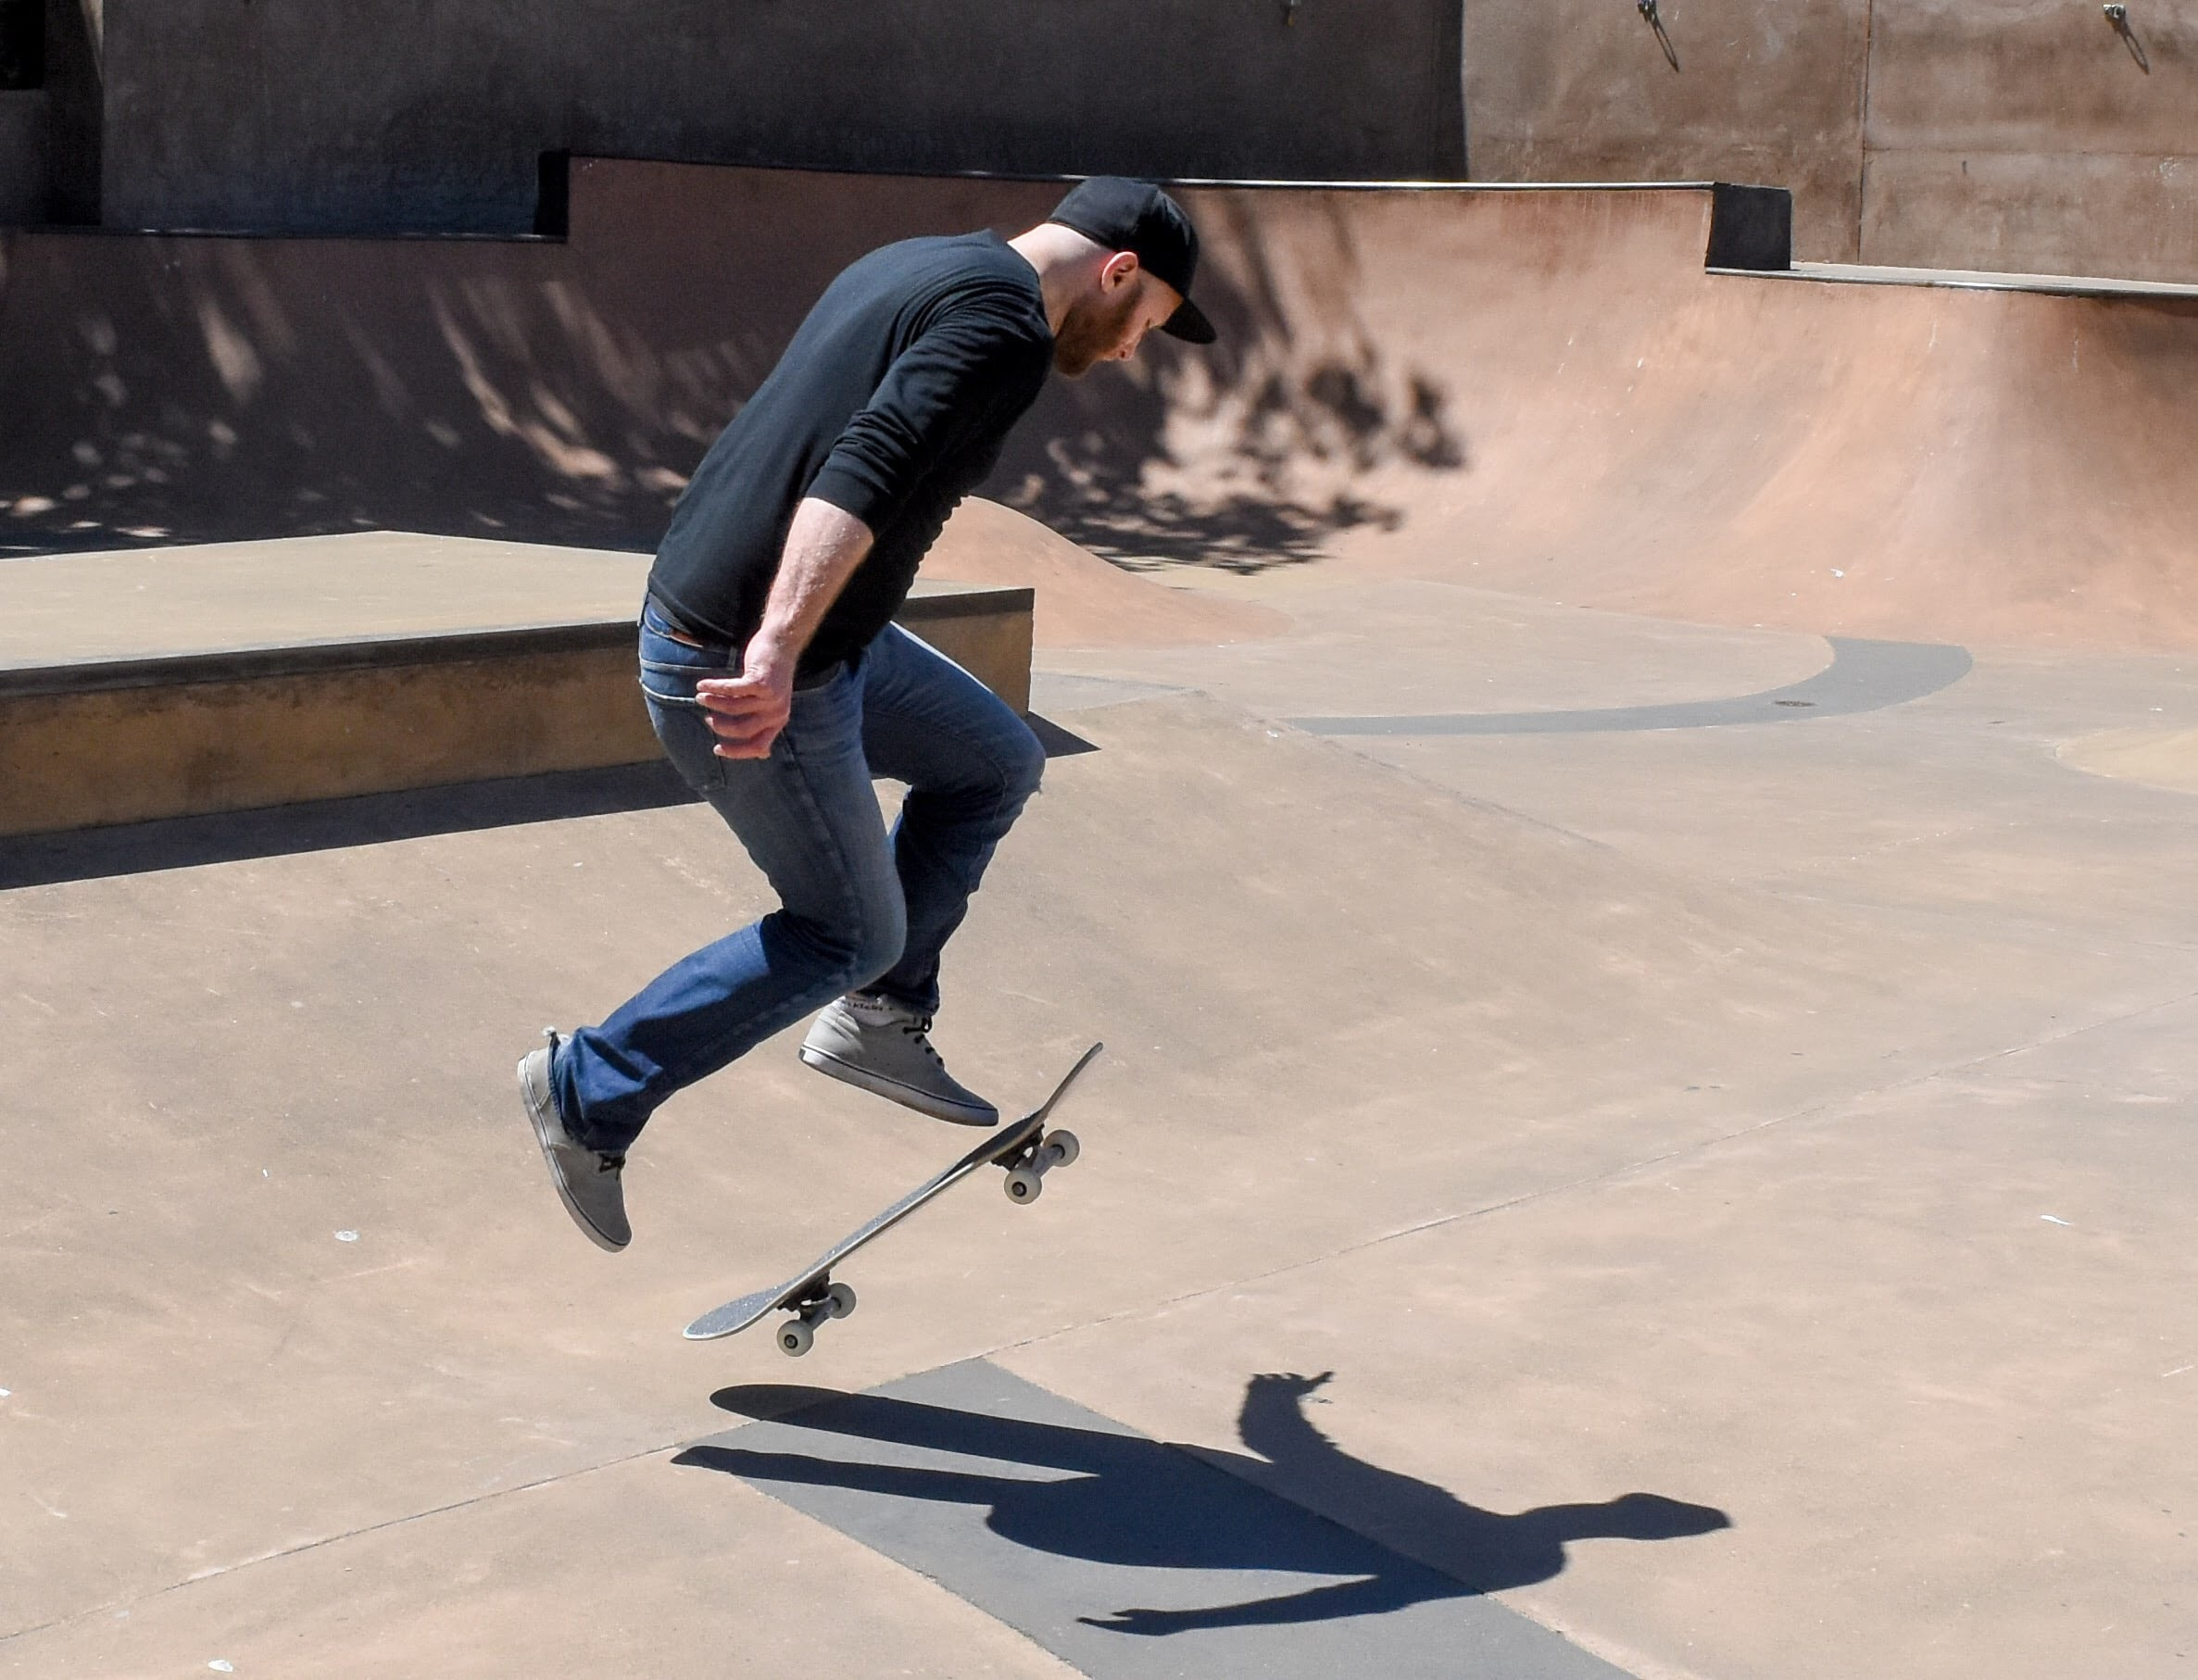 man playing with his skateboard on play yard during daytime